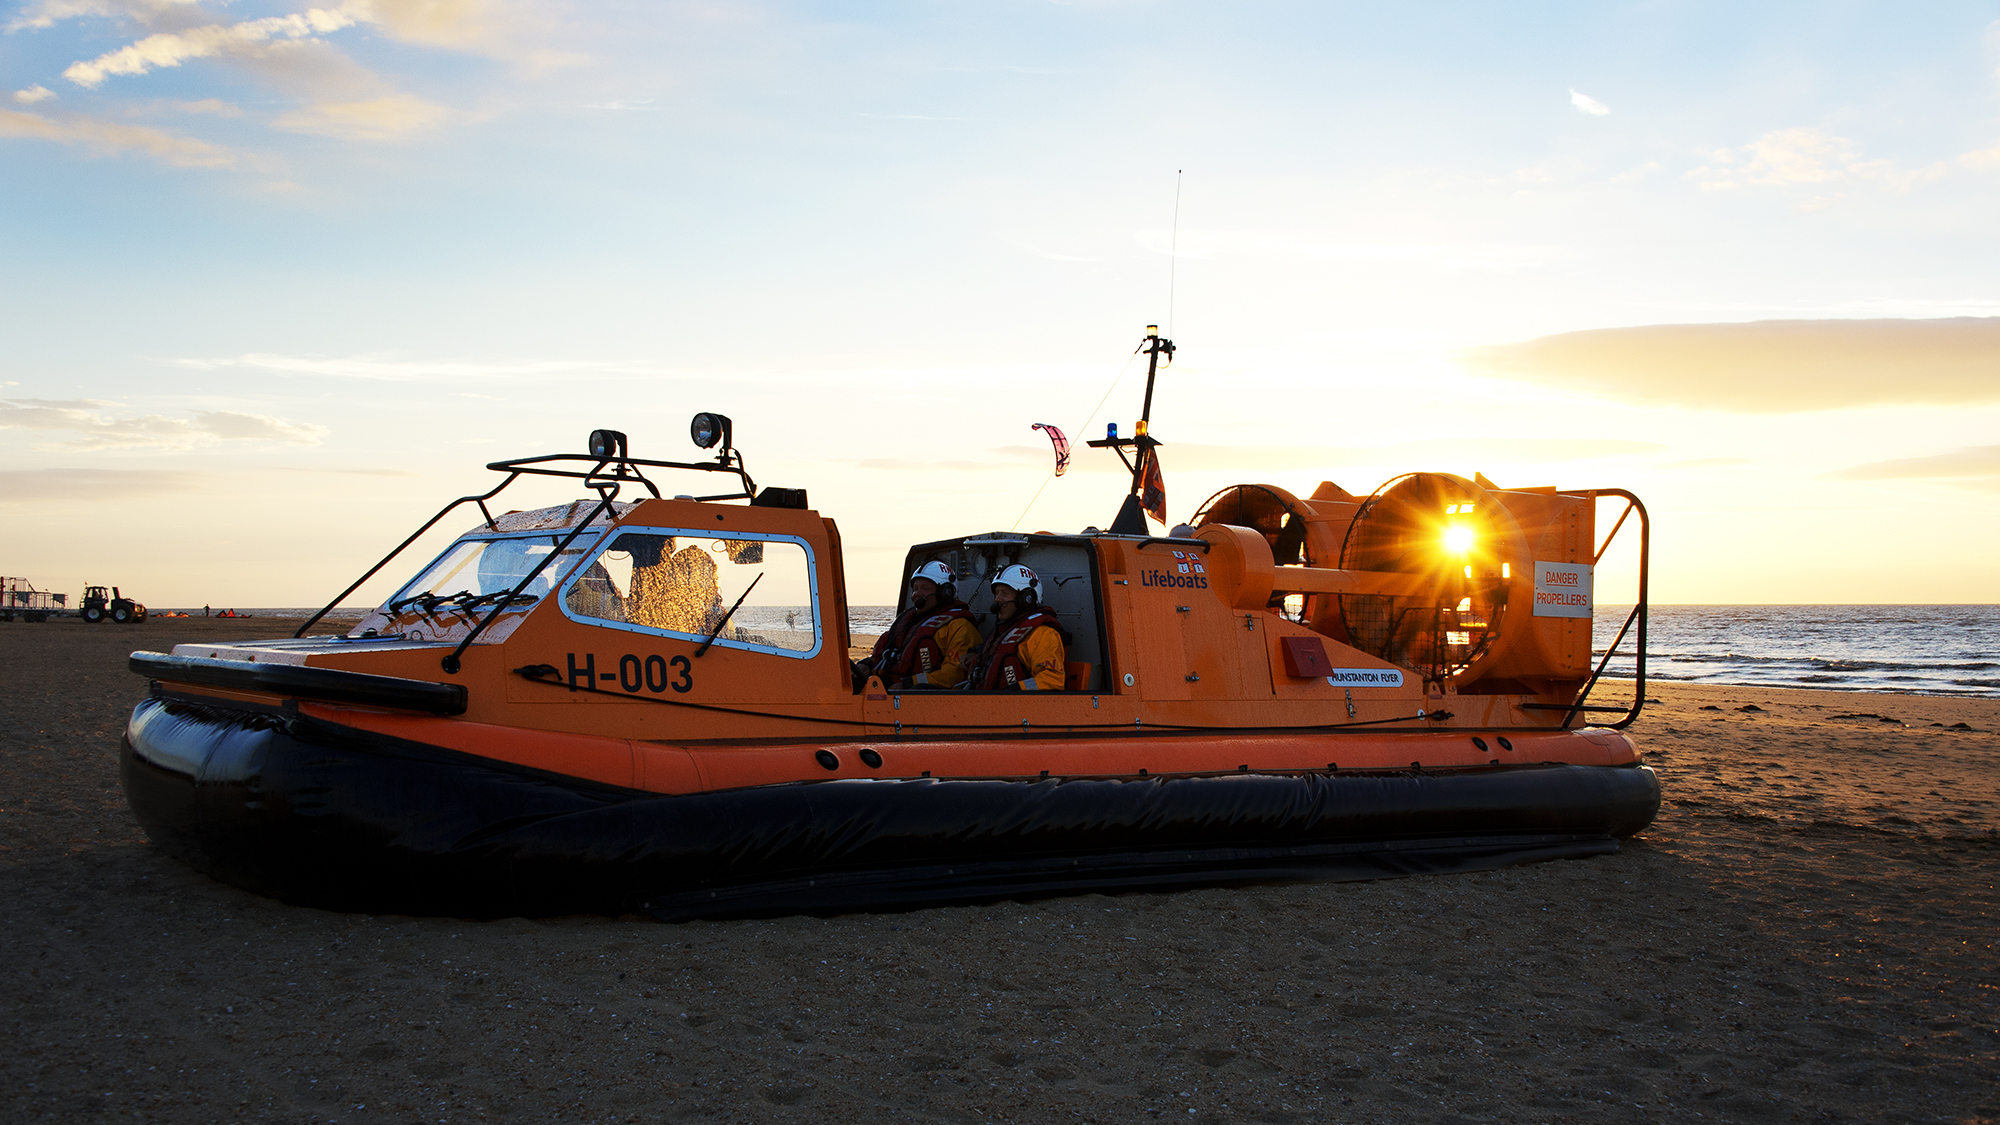 Hunstanton lifeboat volunteers onboard their rescue hovercraft, The Hunstanton Flyer H-003, at sunset